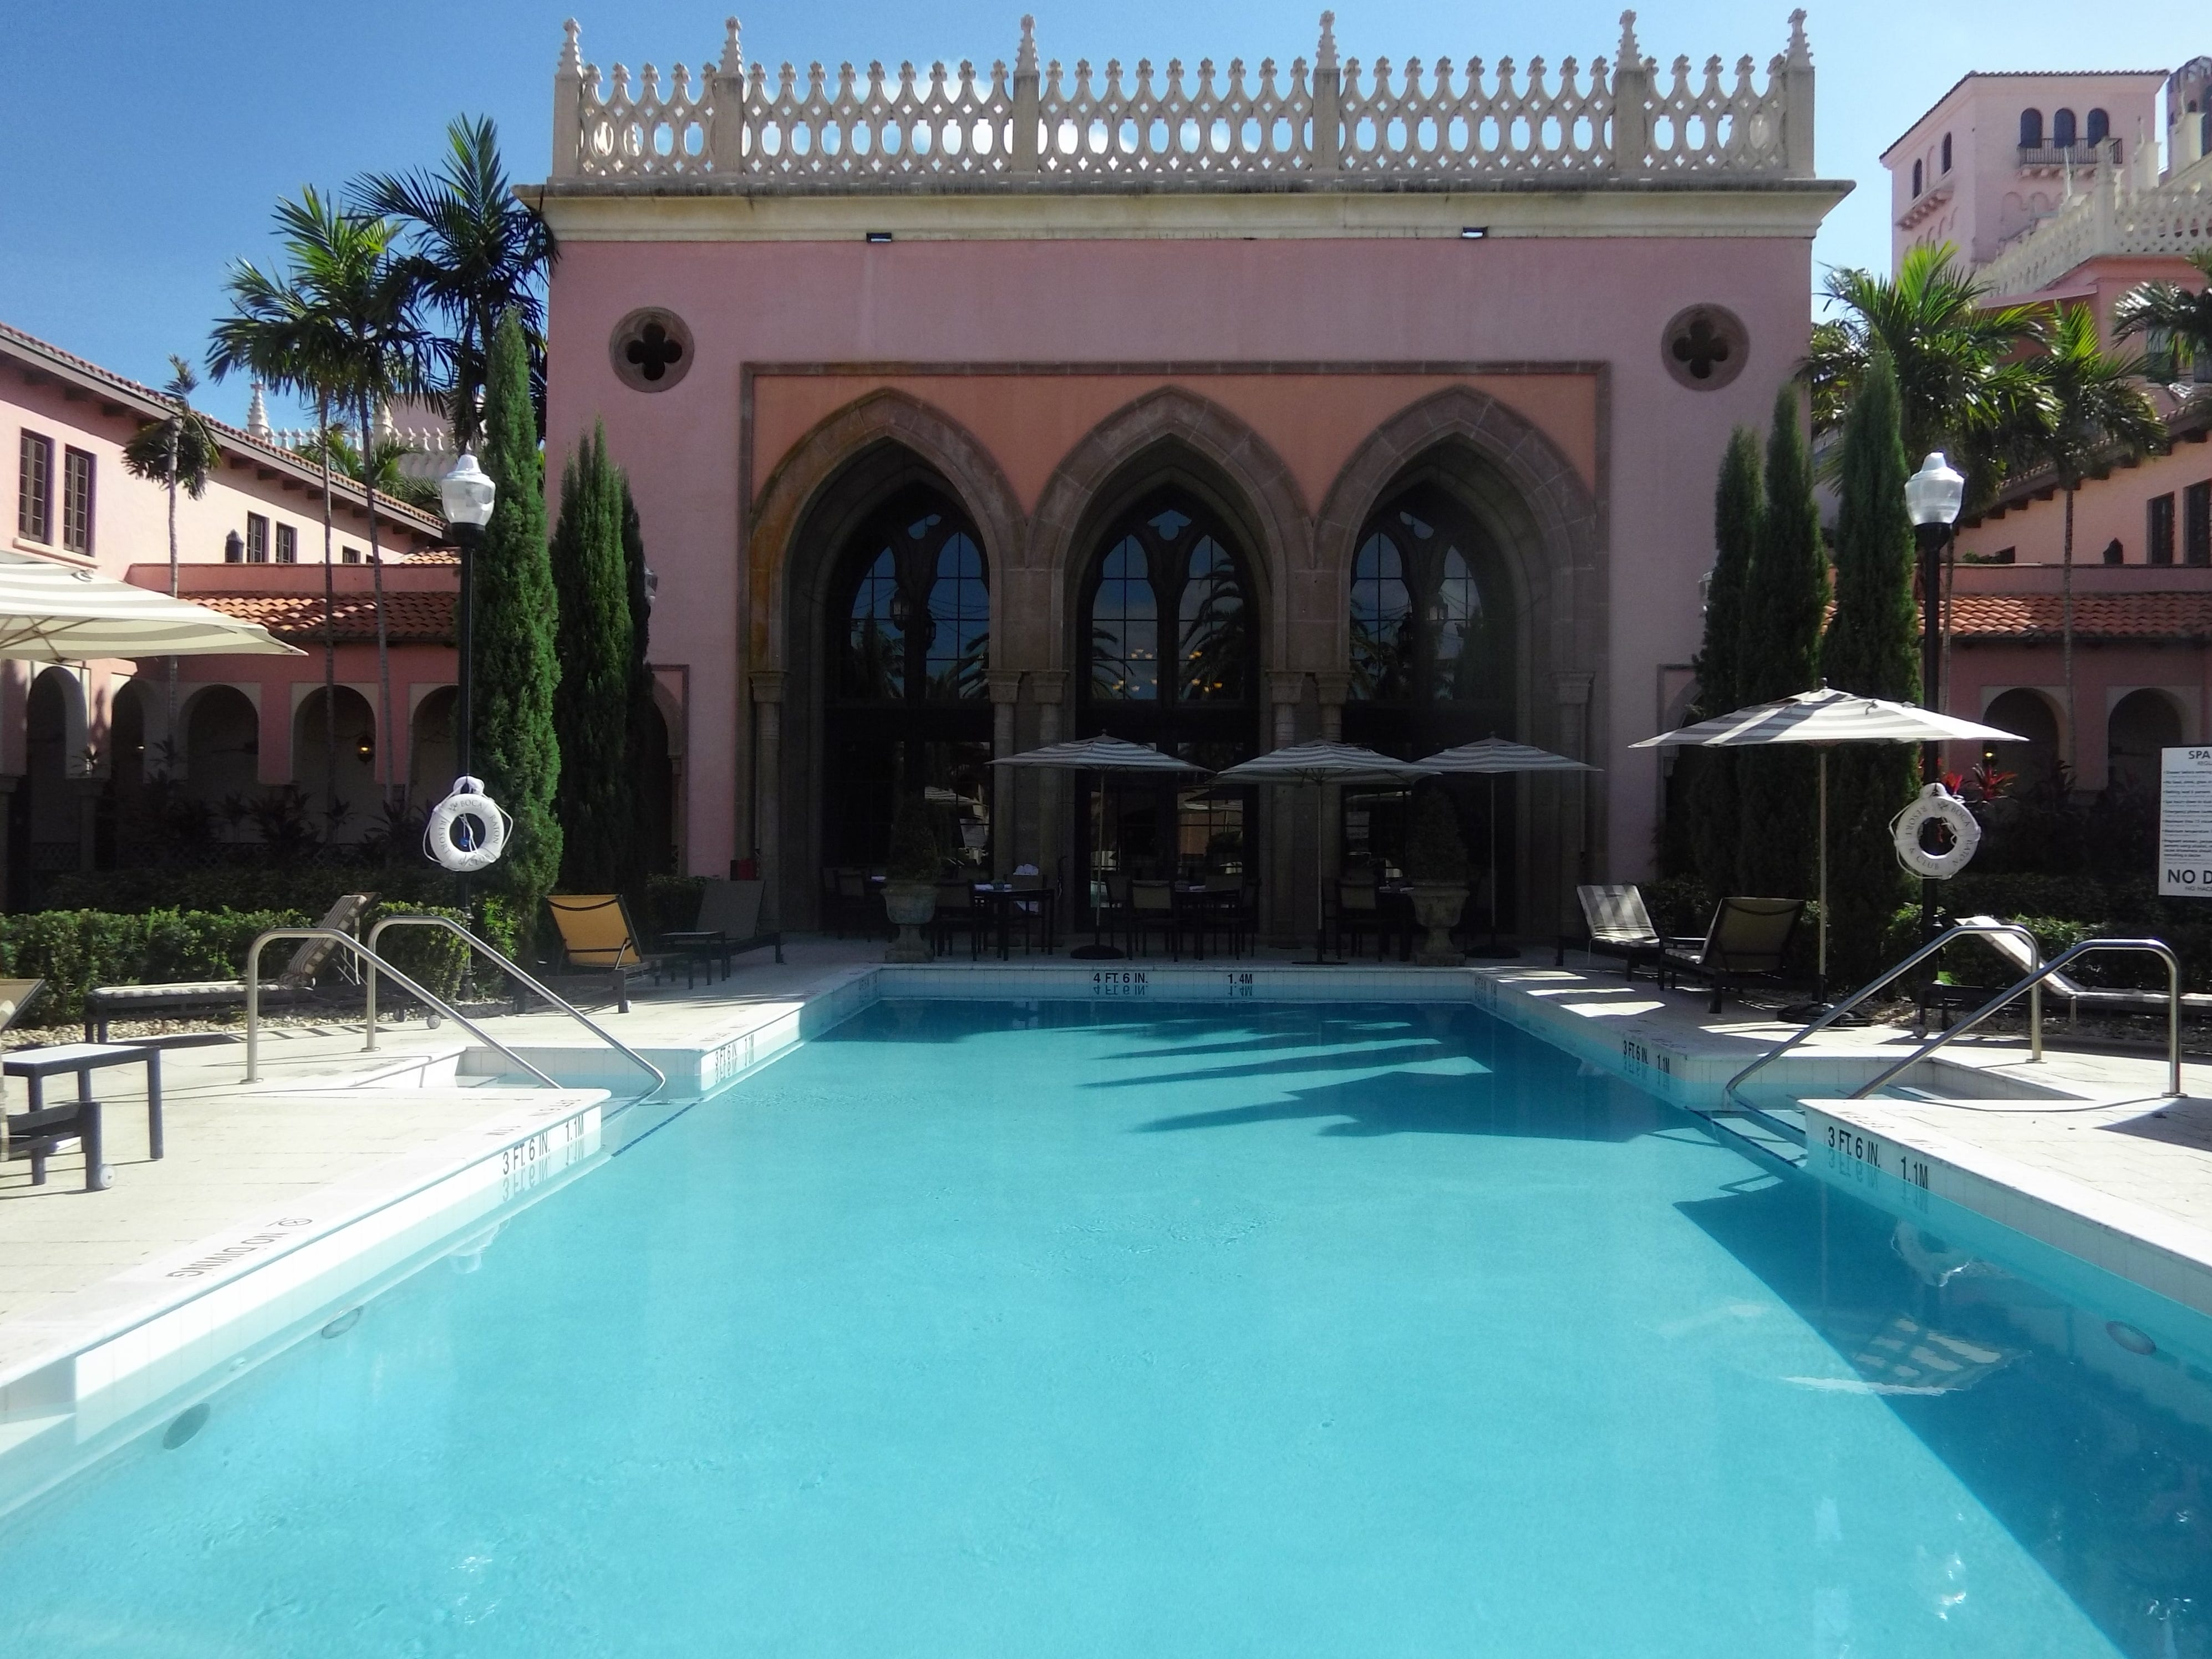 The pool at the Waldorf Astoria Spa is exclusive for spa guests.